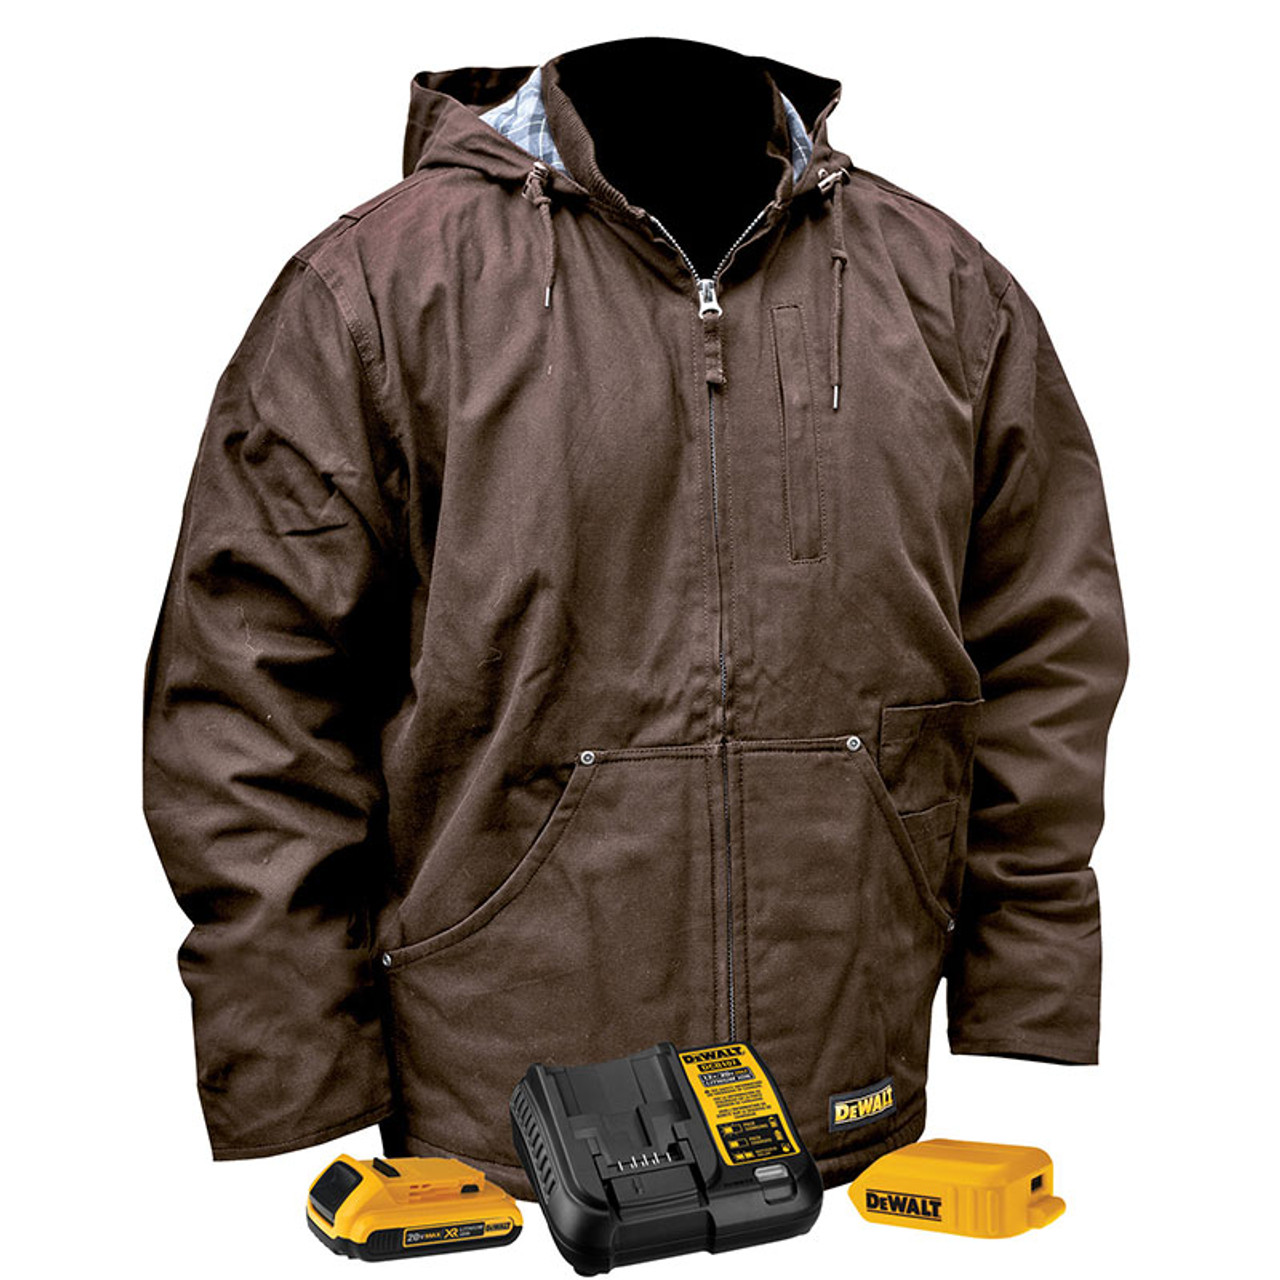 Dewalt Men S Medium Soft Shell 20 Volt Max Xr Lithium Ion Black Jacket Kit With 2 0 Ah Battery And Charger Dchj060atd1 M The Home Depot